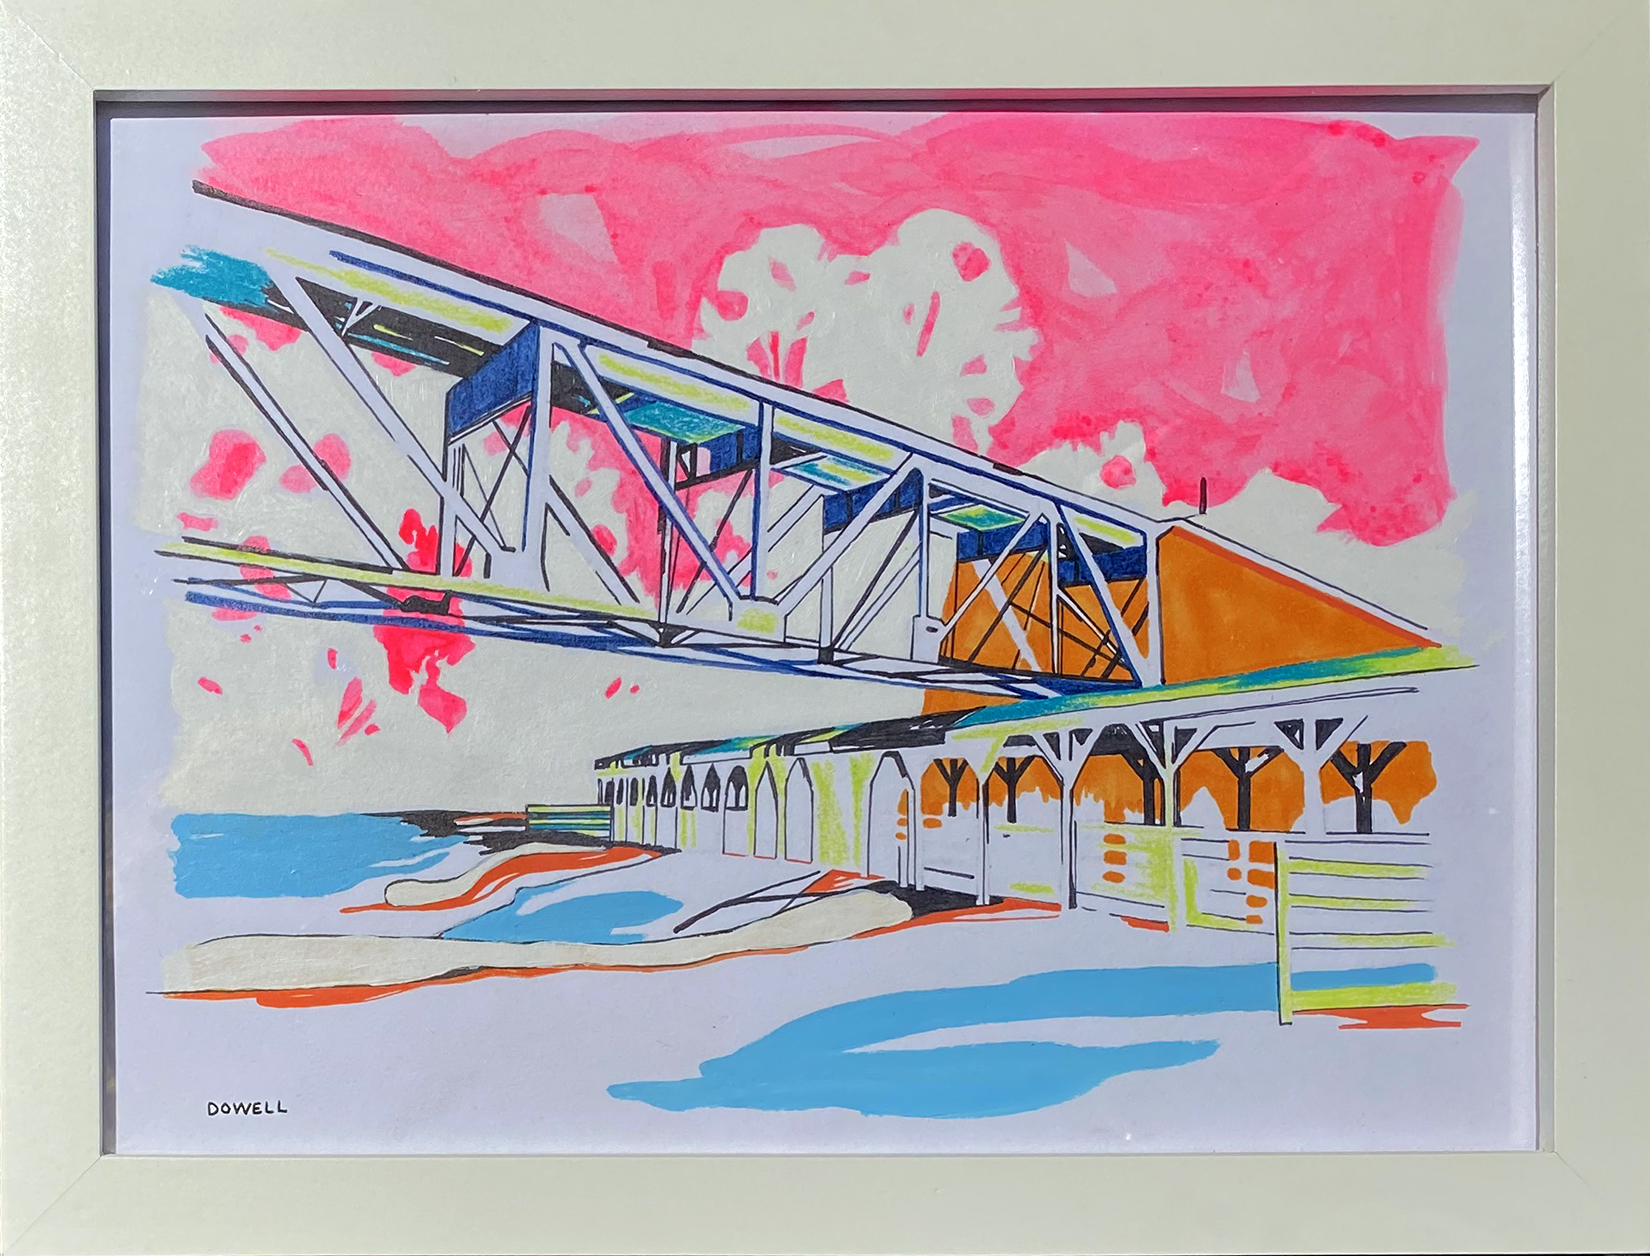 8″ x 10″ mixed media on paper. Study of bridge from ground perspective on brightly-colored background including neon pink sky, with soothing, organic shapes.